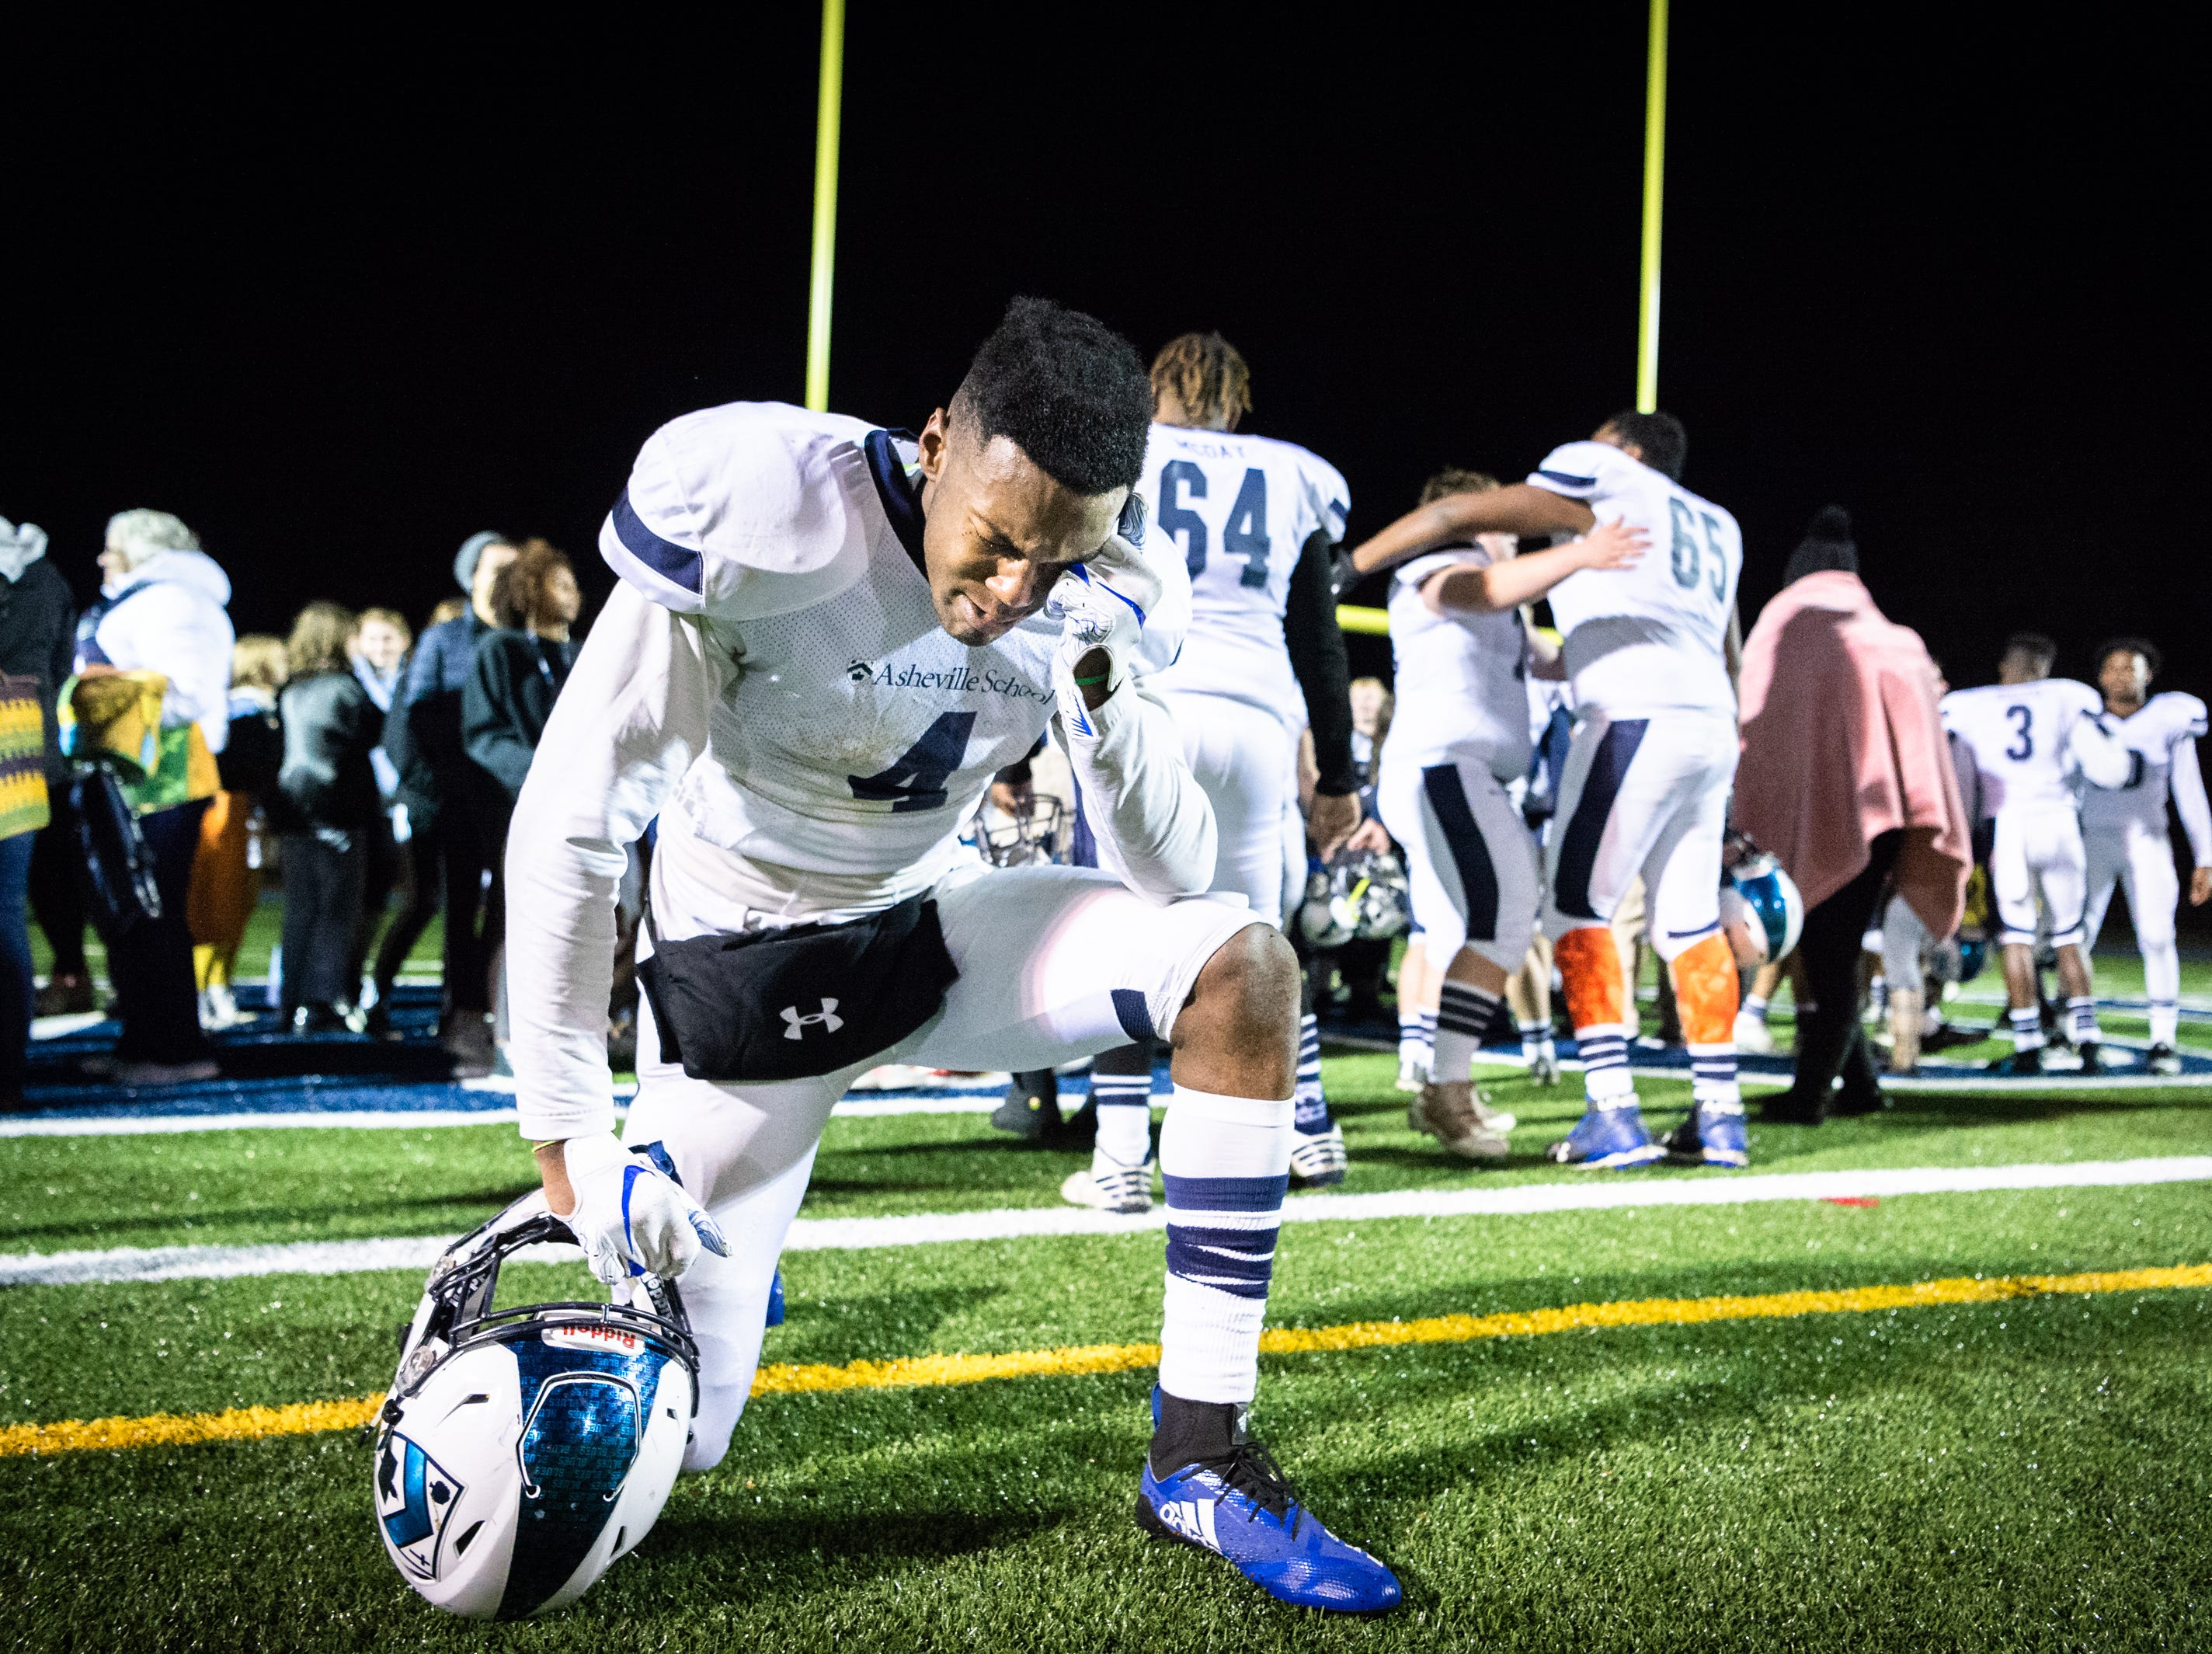 Asheville School's Christopher Hemphill takes a moment by himself, crying after their defeating Southlake Christian 33-28 in their Friday night second round semifinal game Nov. 9, 2018, advancing them to the NCISAA Division III state championship game.